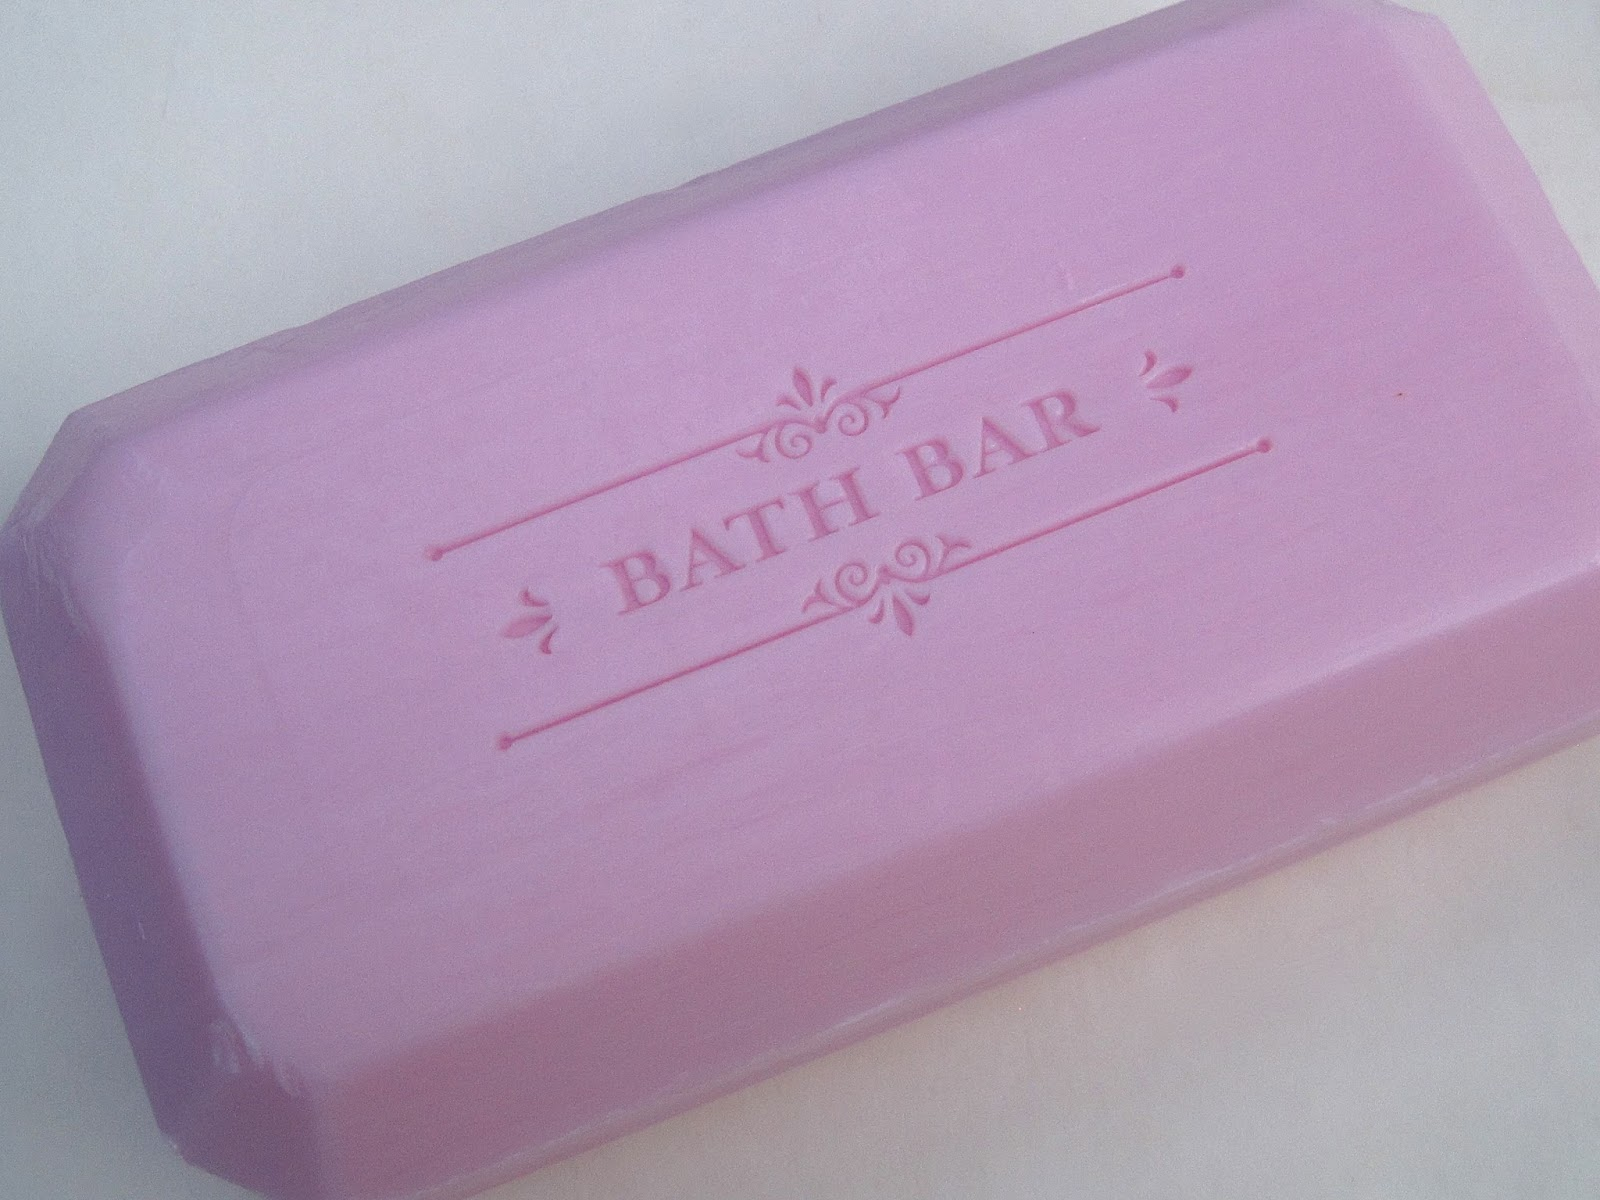 Plain Bar Of Soap Bar Of Soap It's a big...